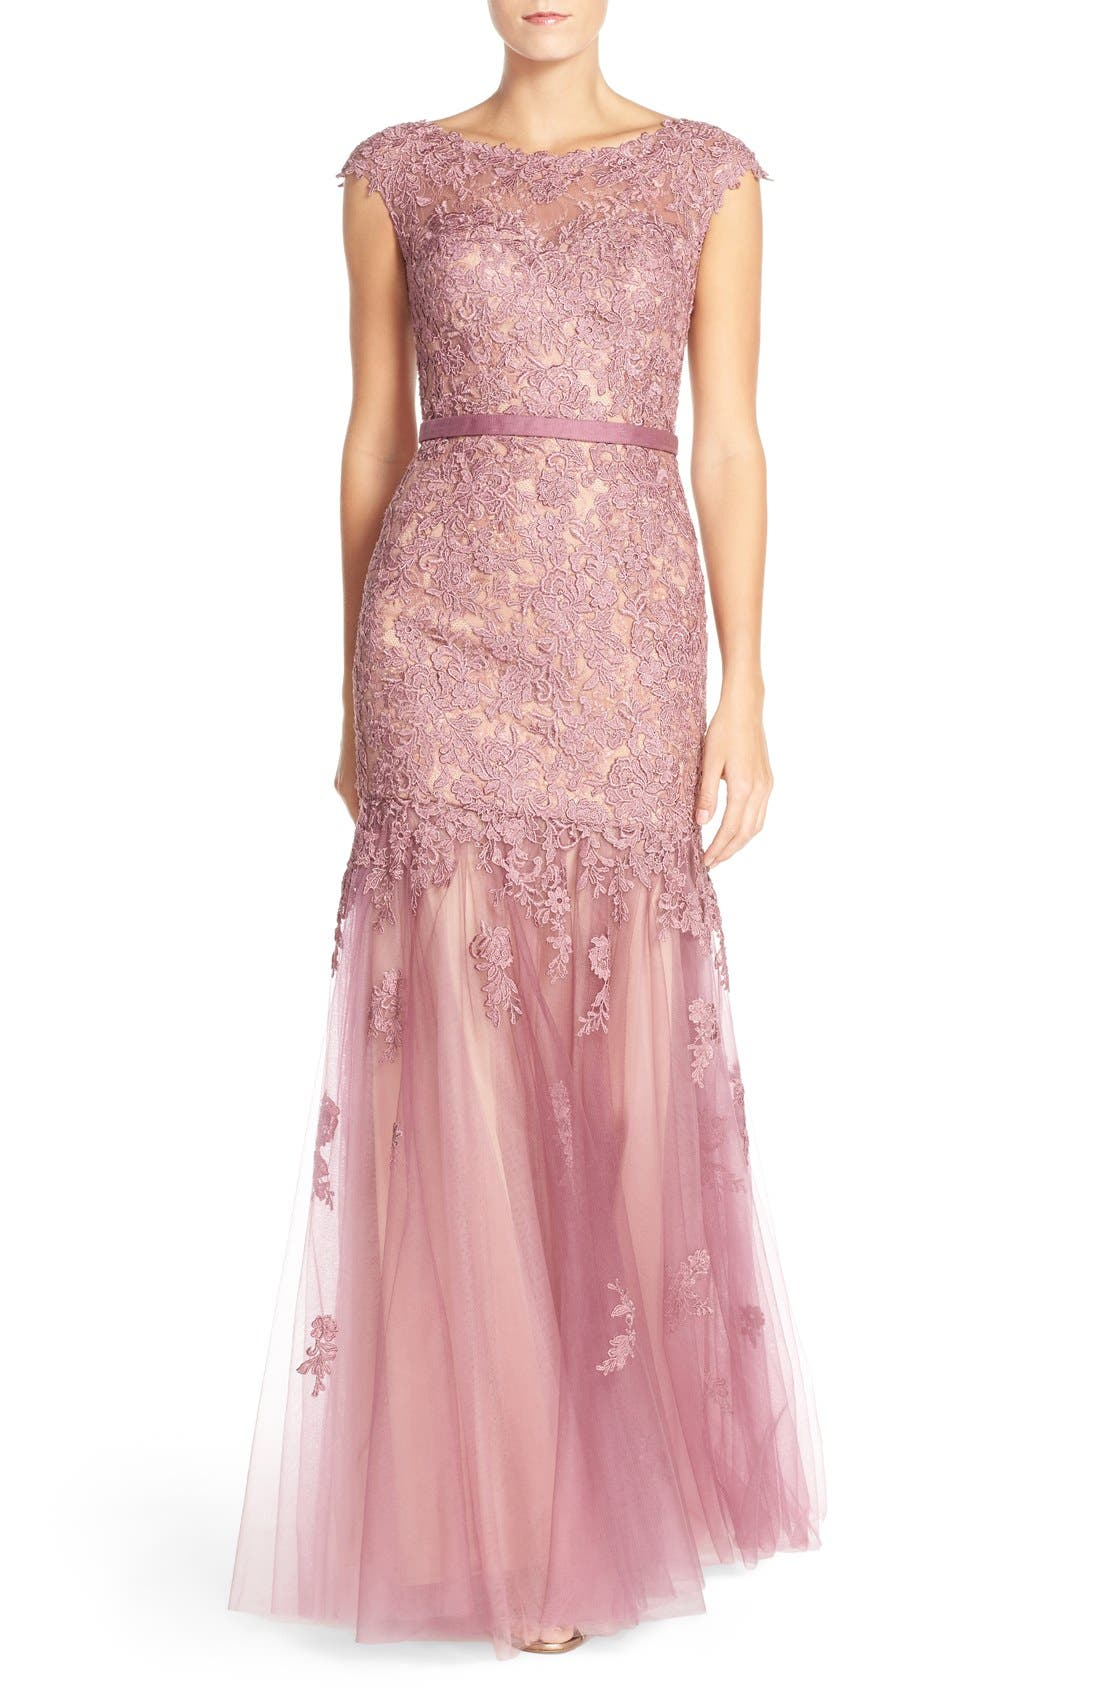 Alternate Image 1 Selected - La Femme Lace & Tulle Mermaid Gown